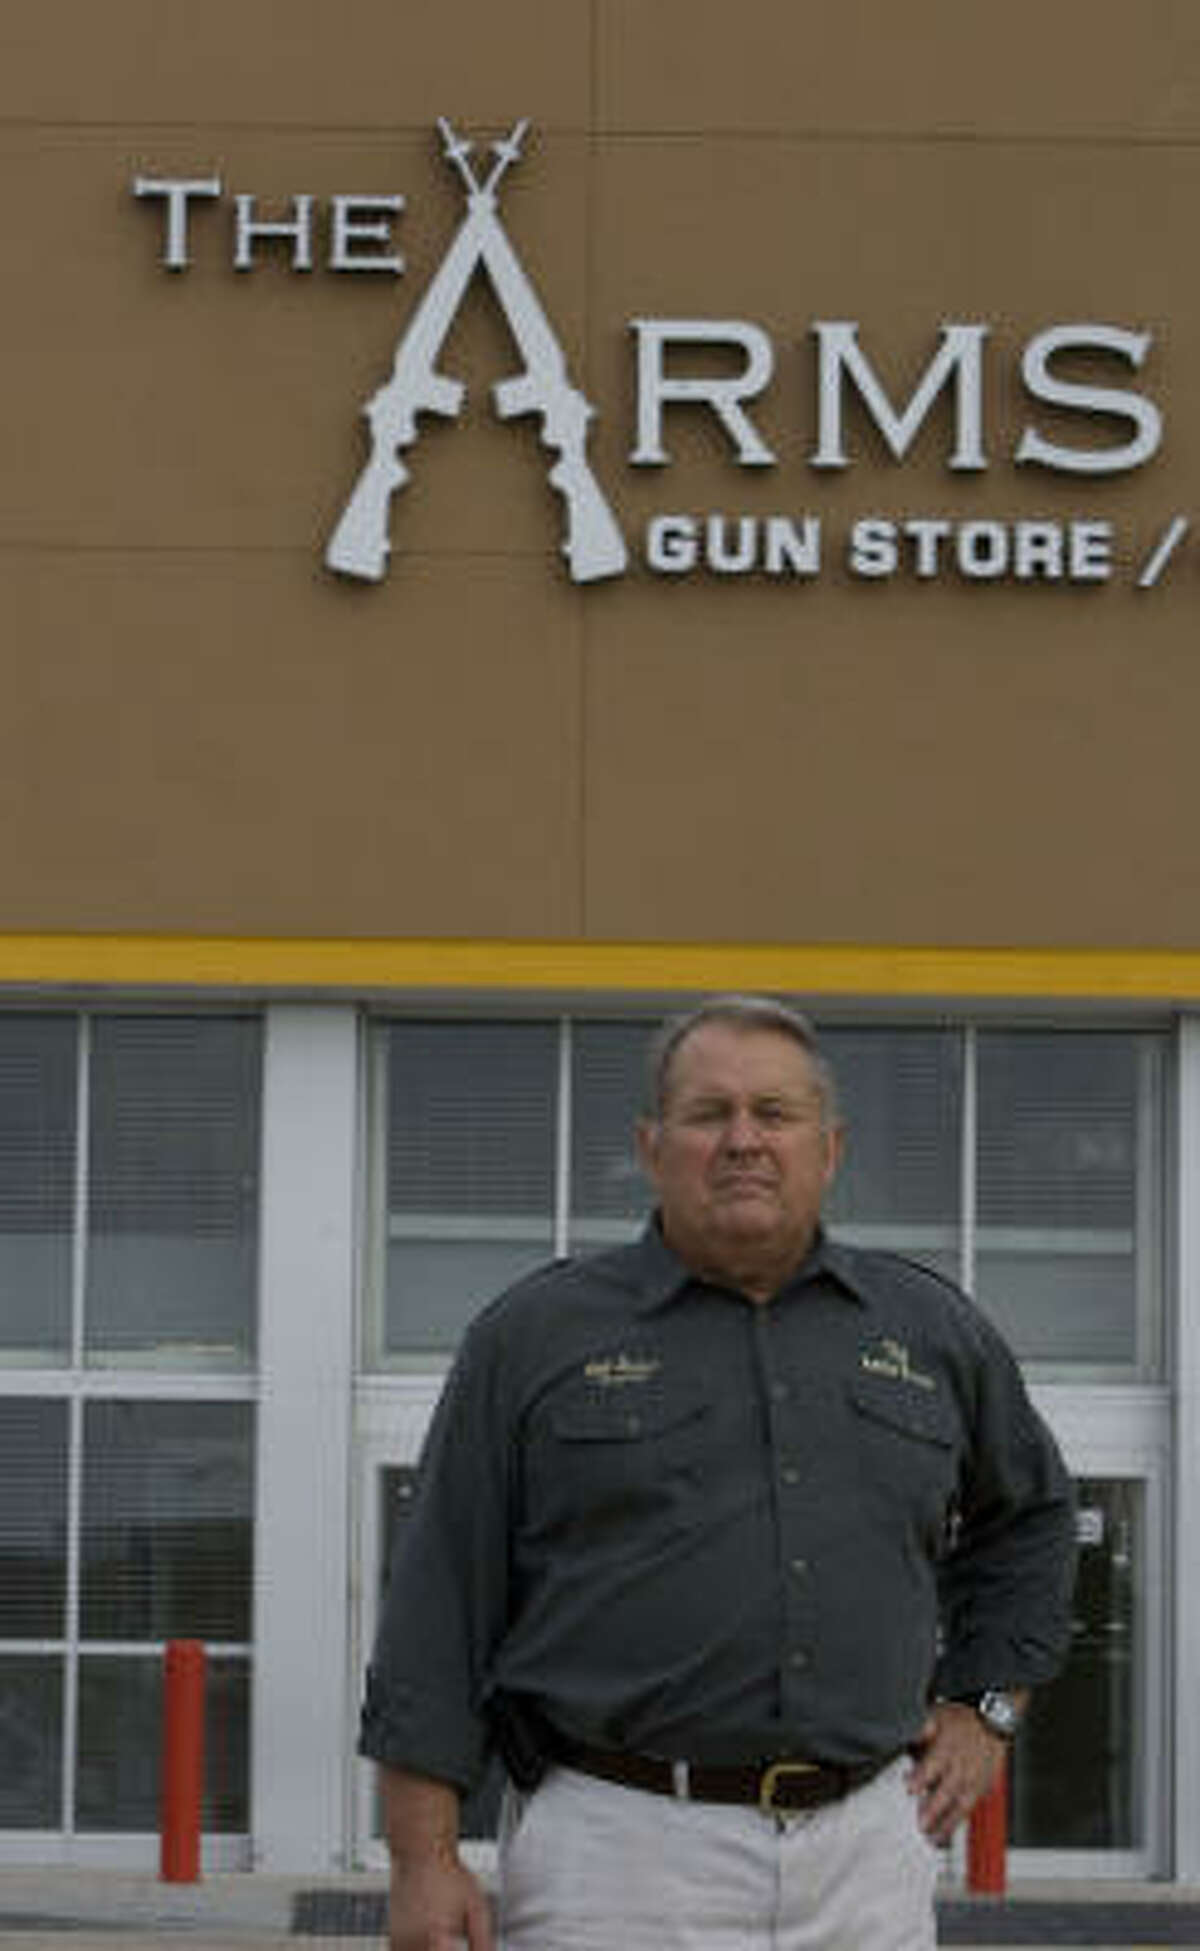 Bill James' Arms Room is an unusual occupant for a shopping center. Among the League City center's tenants are a SuperTarget, a Home Depot and a PetSmart.